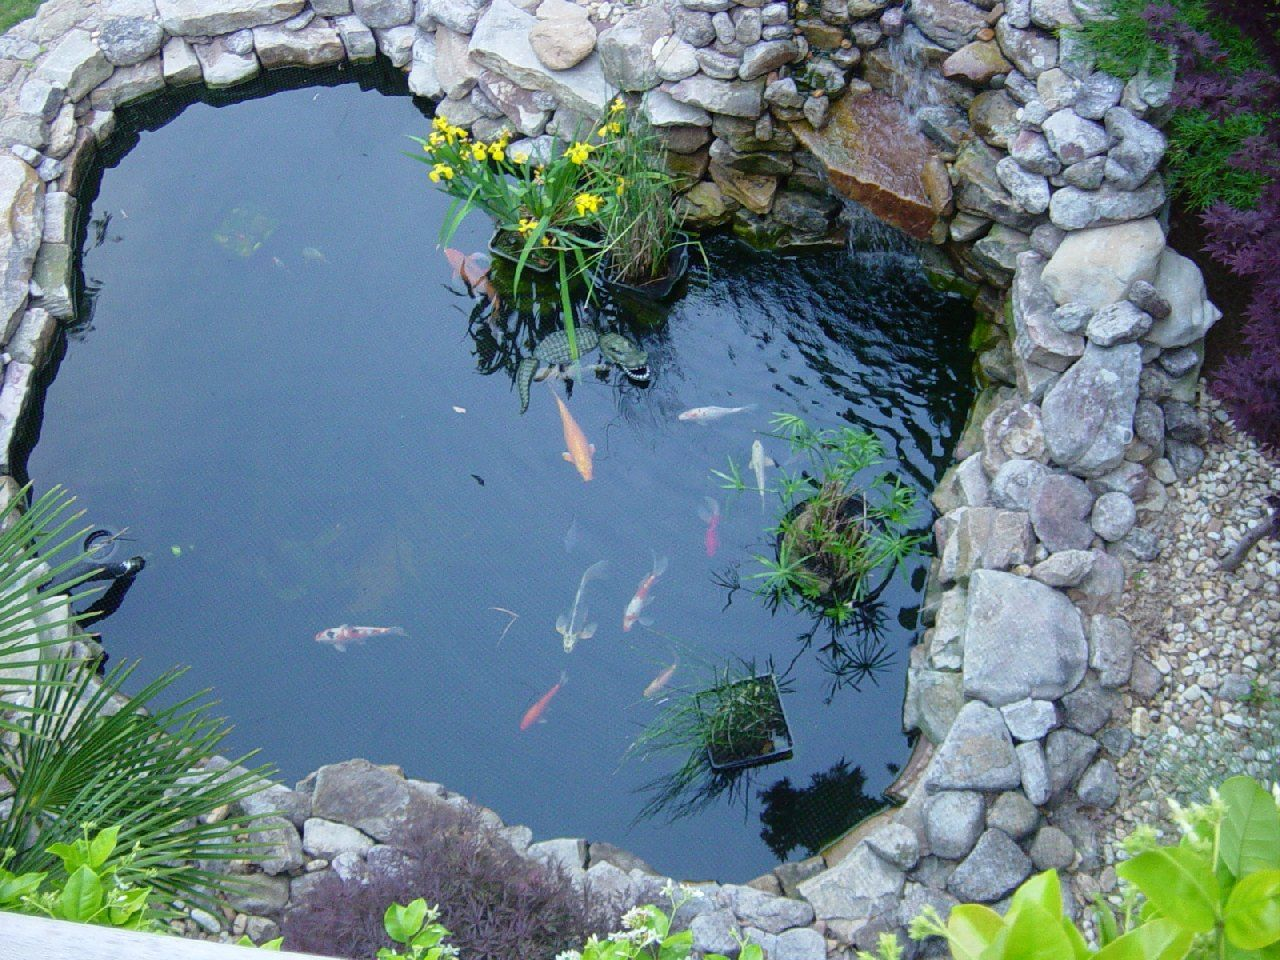 20 koi pond ideas to create a unique garden koi for Backyard koi pond ideas